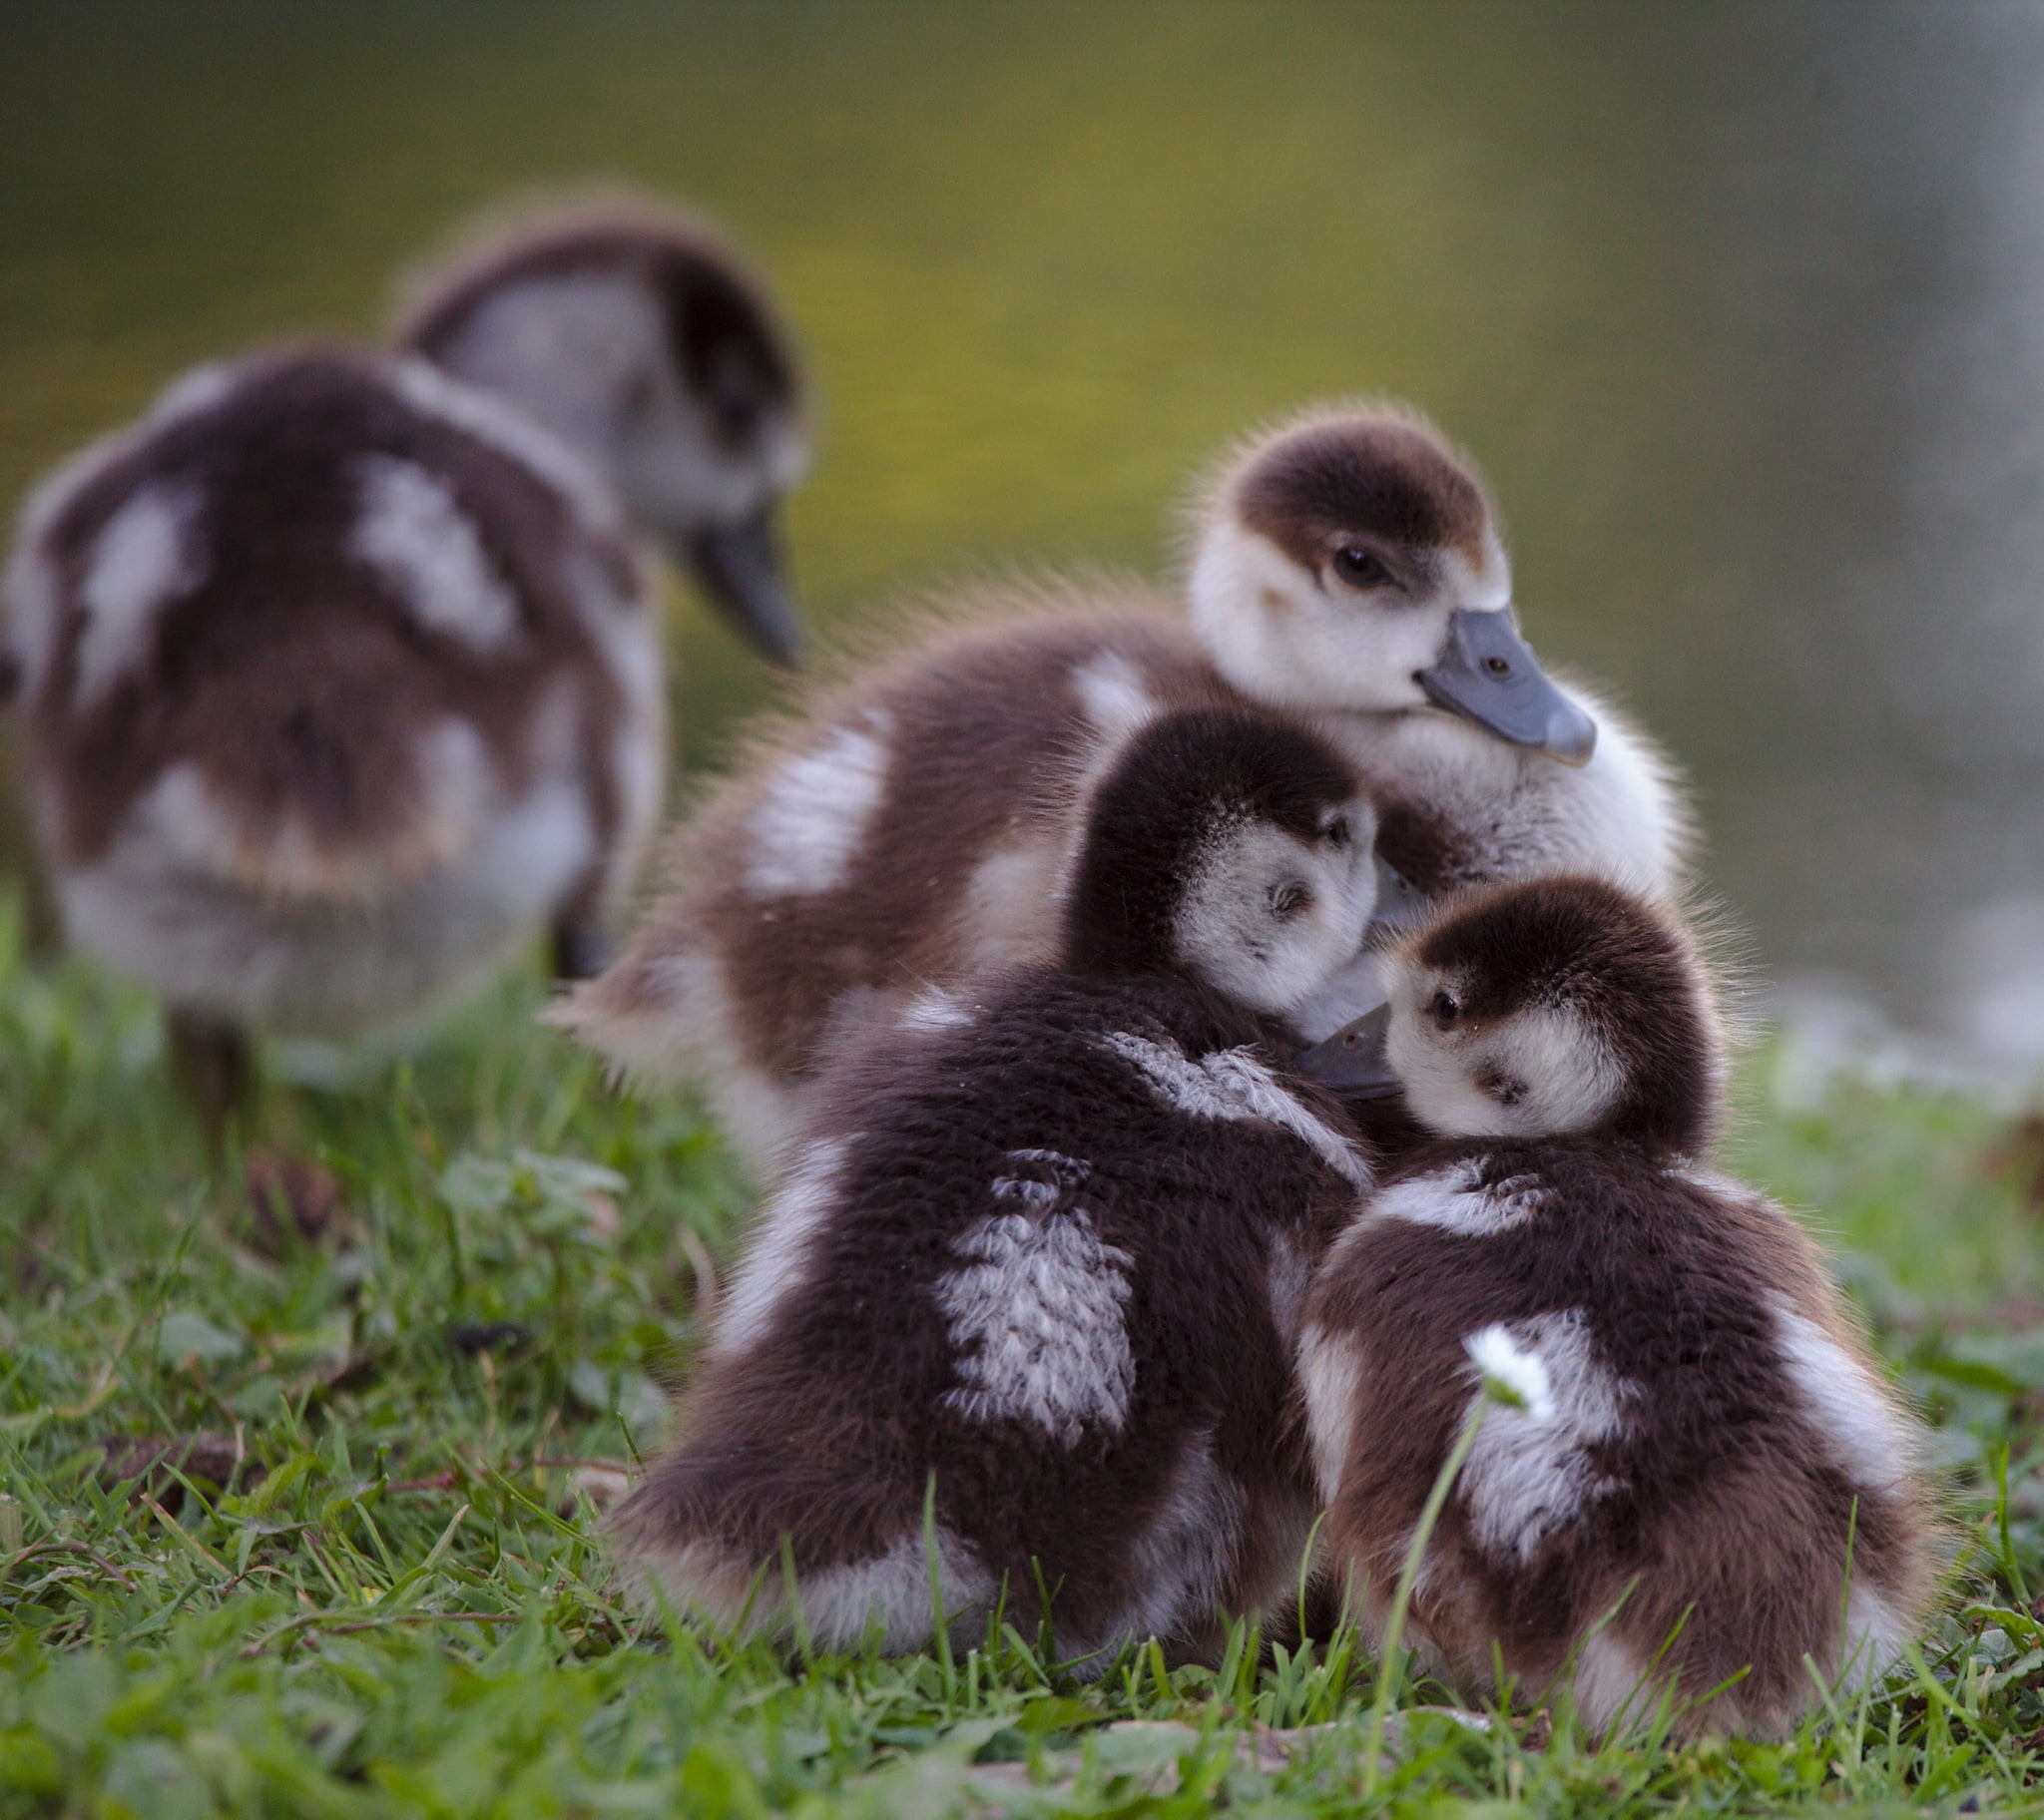 2048x1824 Selective focus photography of three ducklings HD wallpaper | Wallpaper  Flare